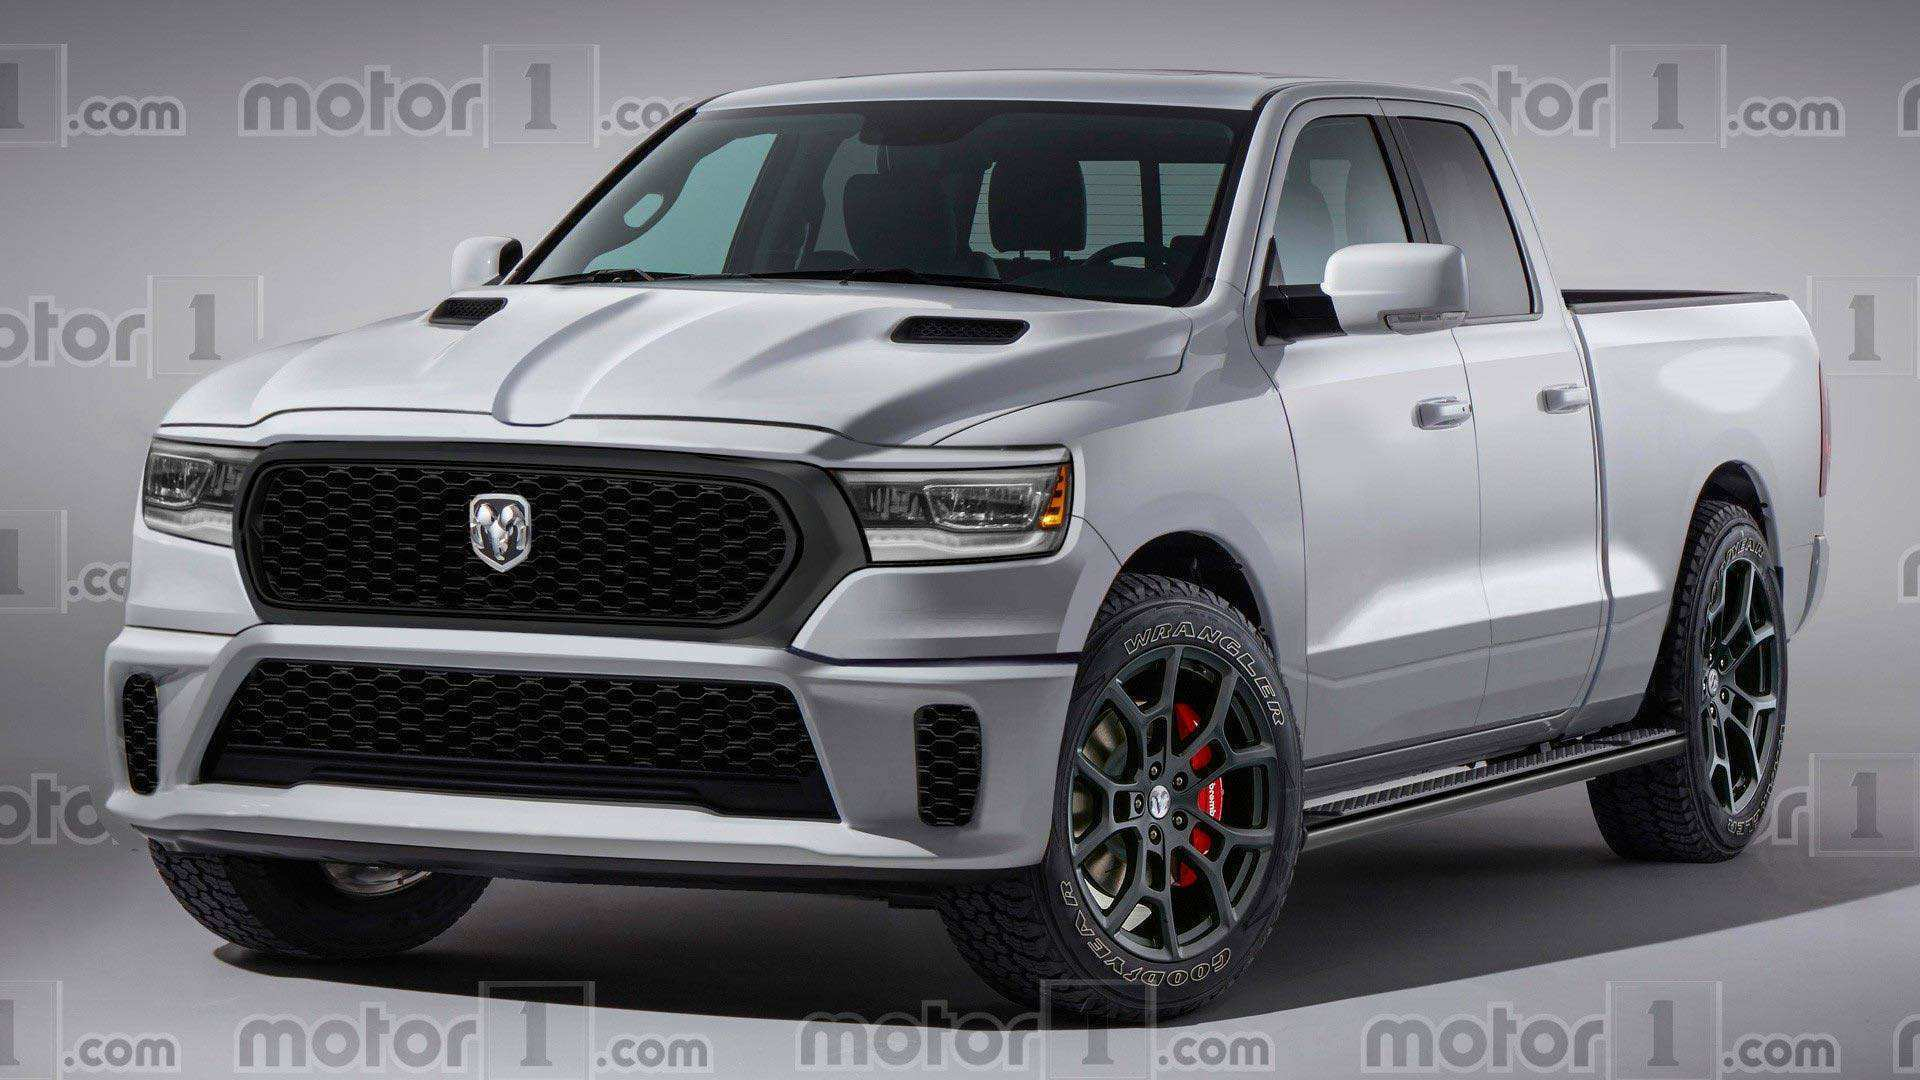 35 The 2020 Ram 1500 Hellcat Diesel Research New